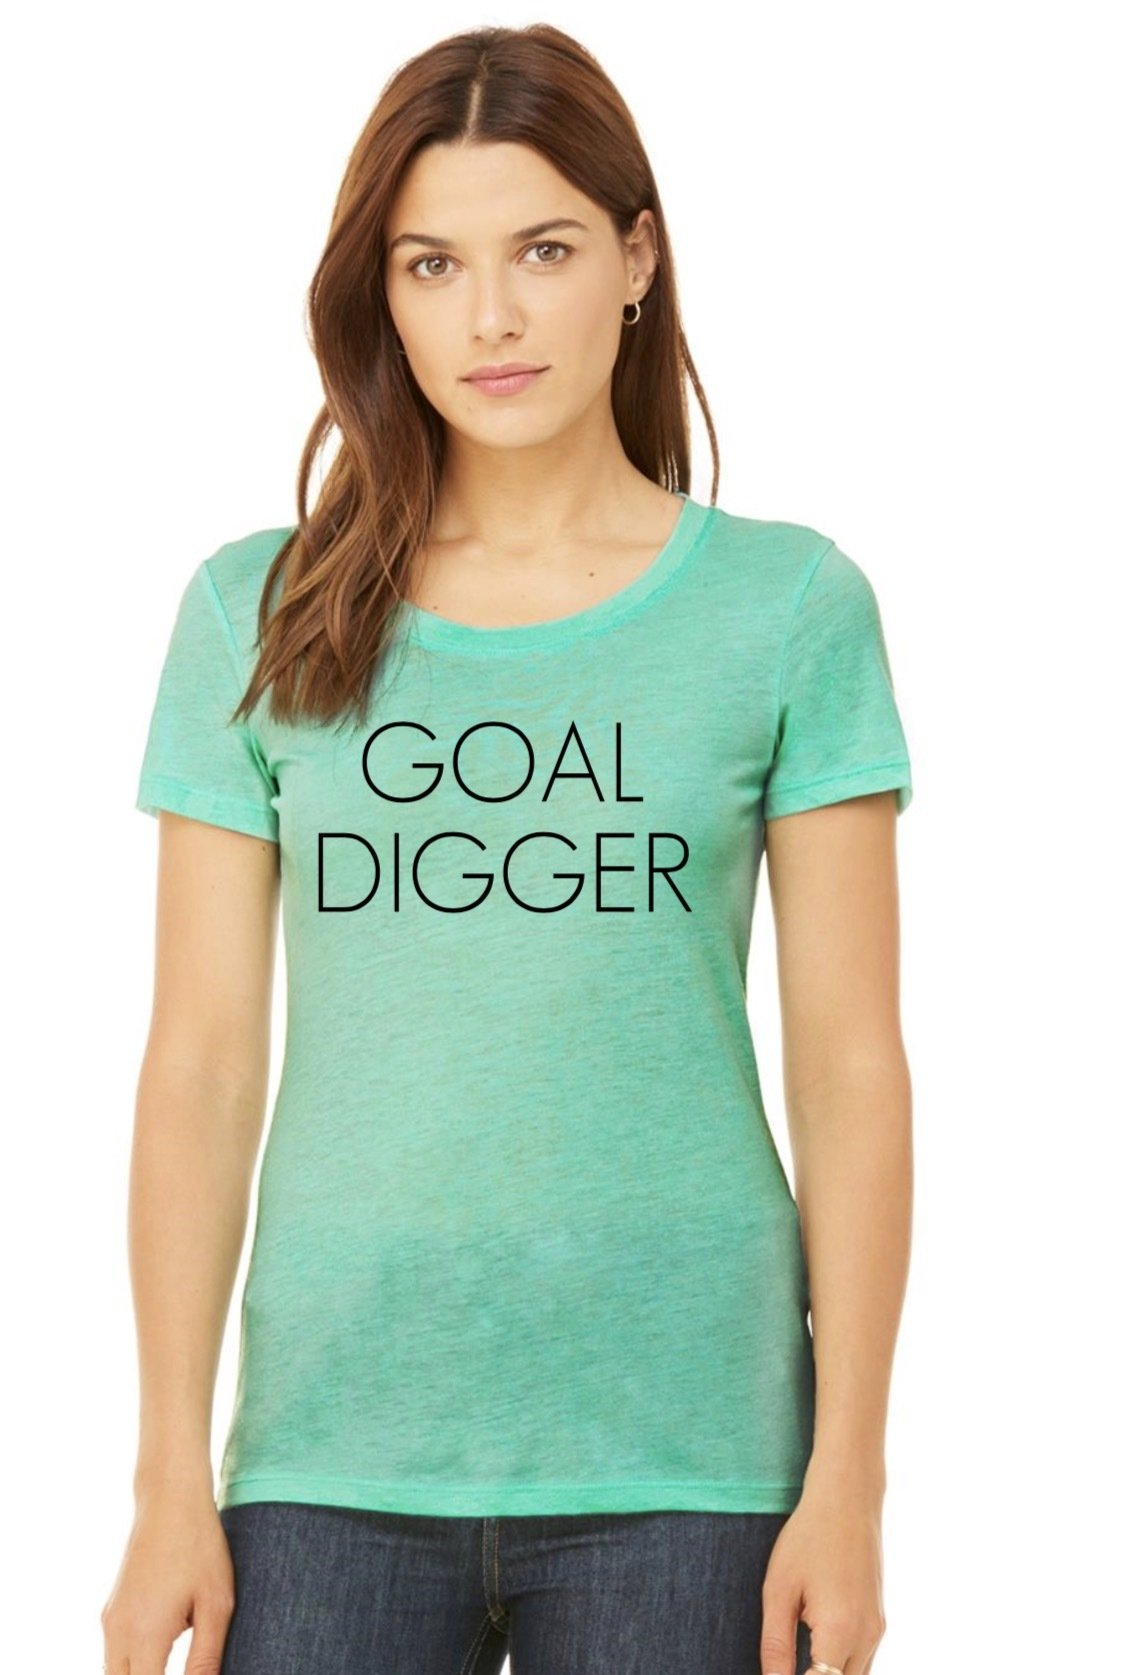 Goal Digger Top in Mint GDTSM